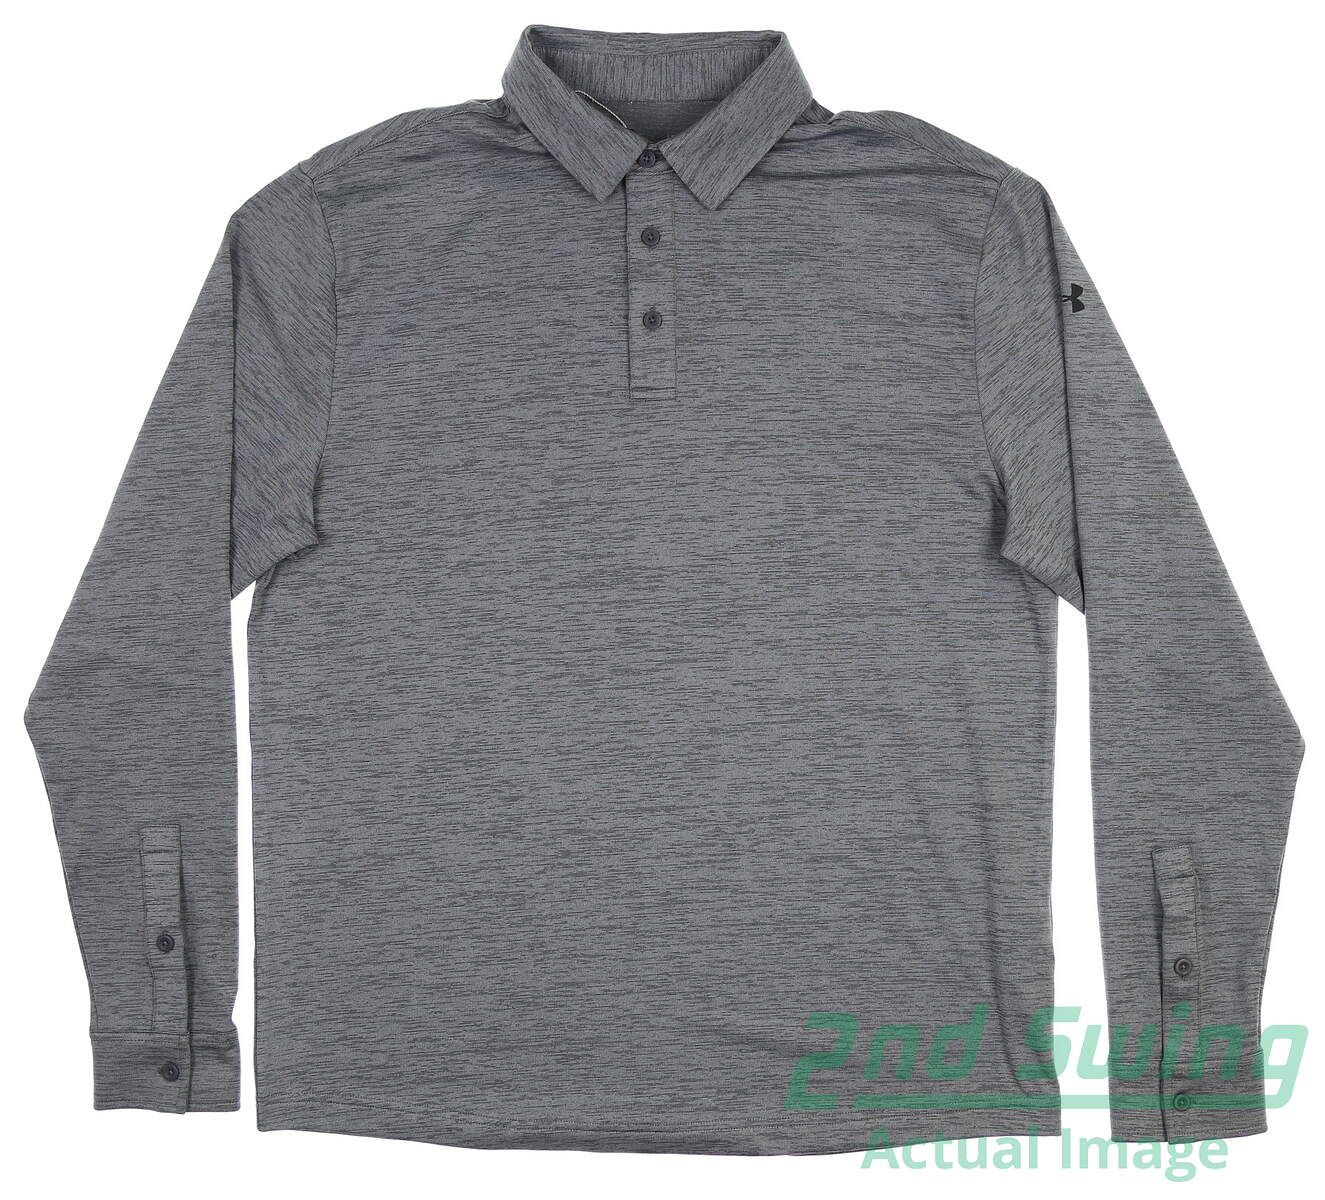 cfe49fa961 New Mens Under Armour Long Sleeve Playoff Polo Large L Gray UM0815 ...